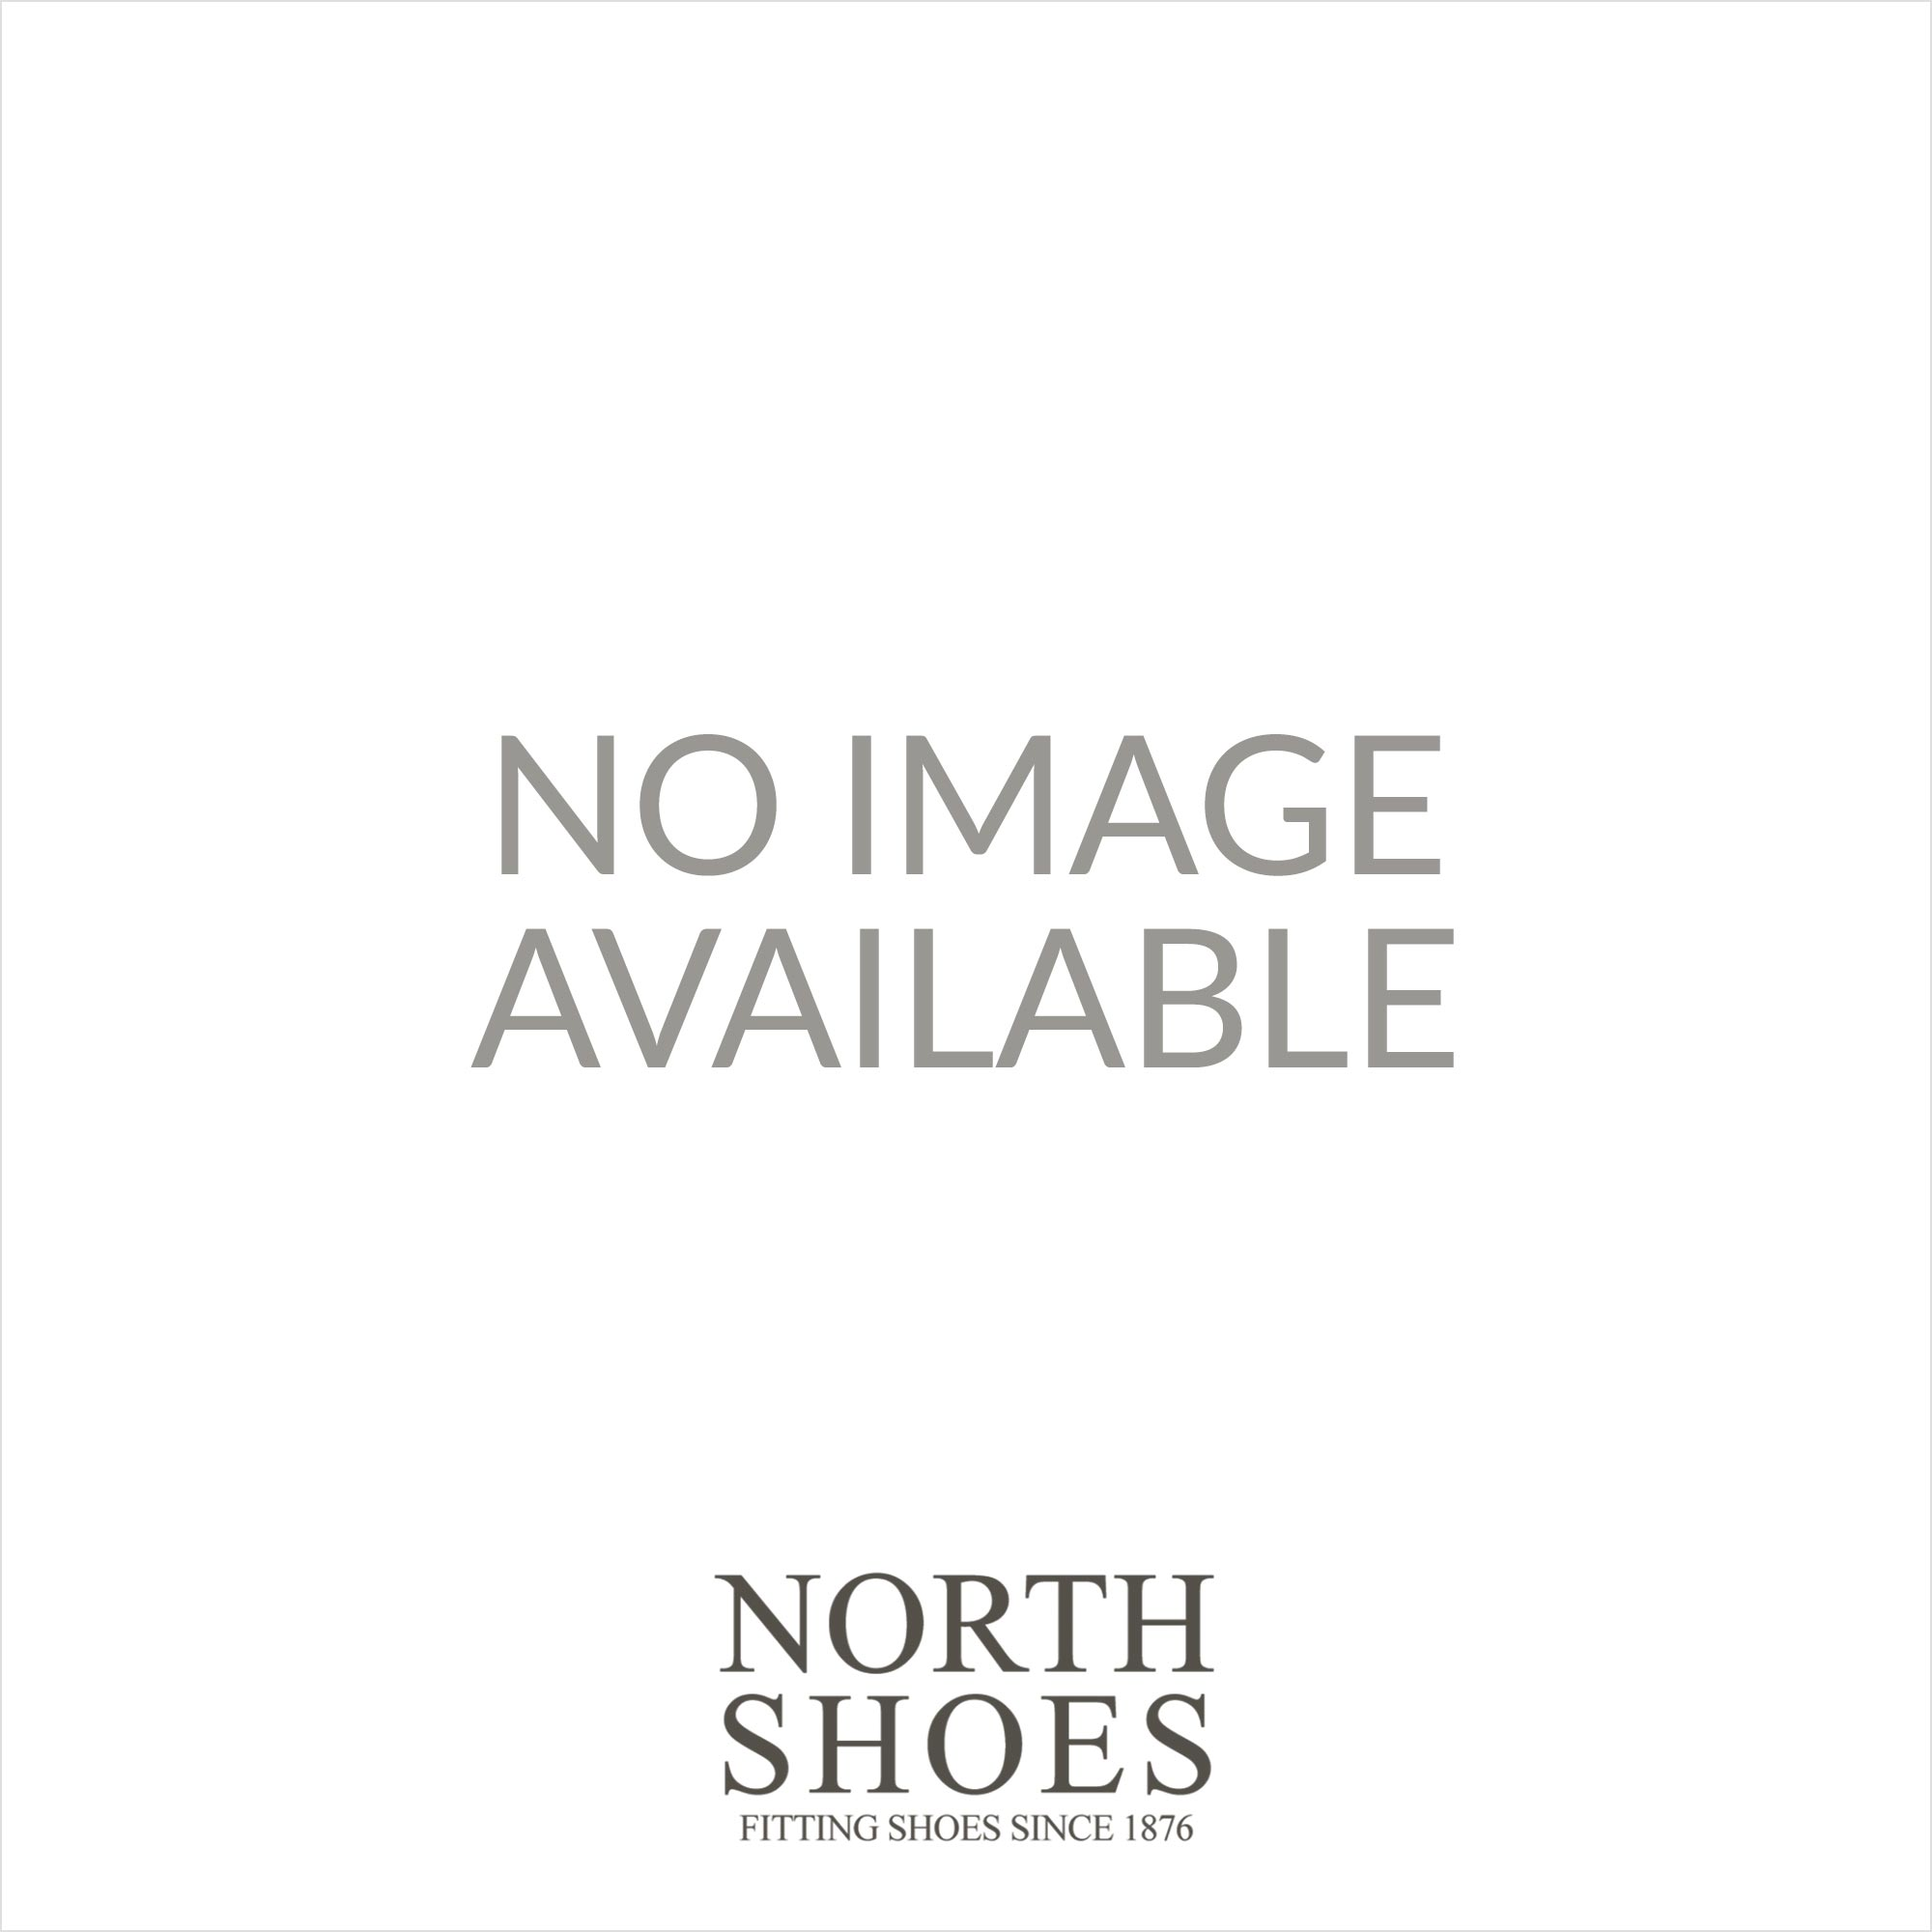 93aaa76b01d Clarks Un Vaze Black Womens Sandal - Clarks from North Shoes UK